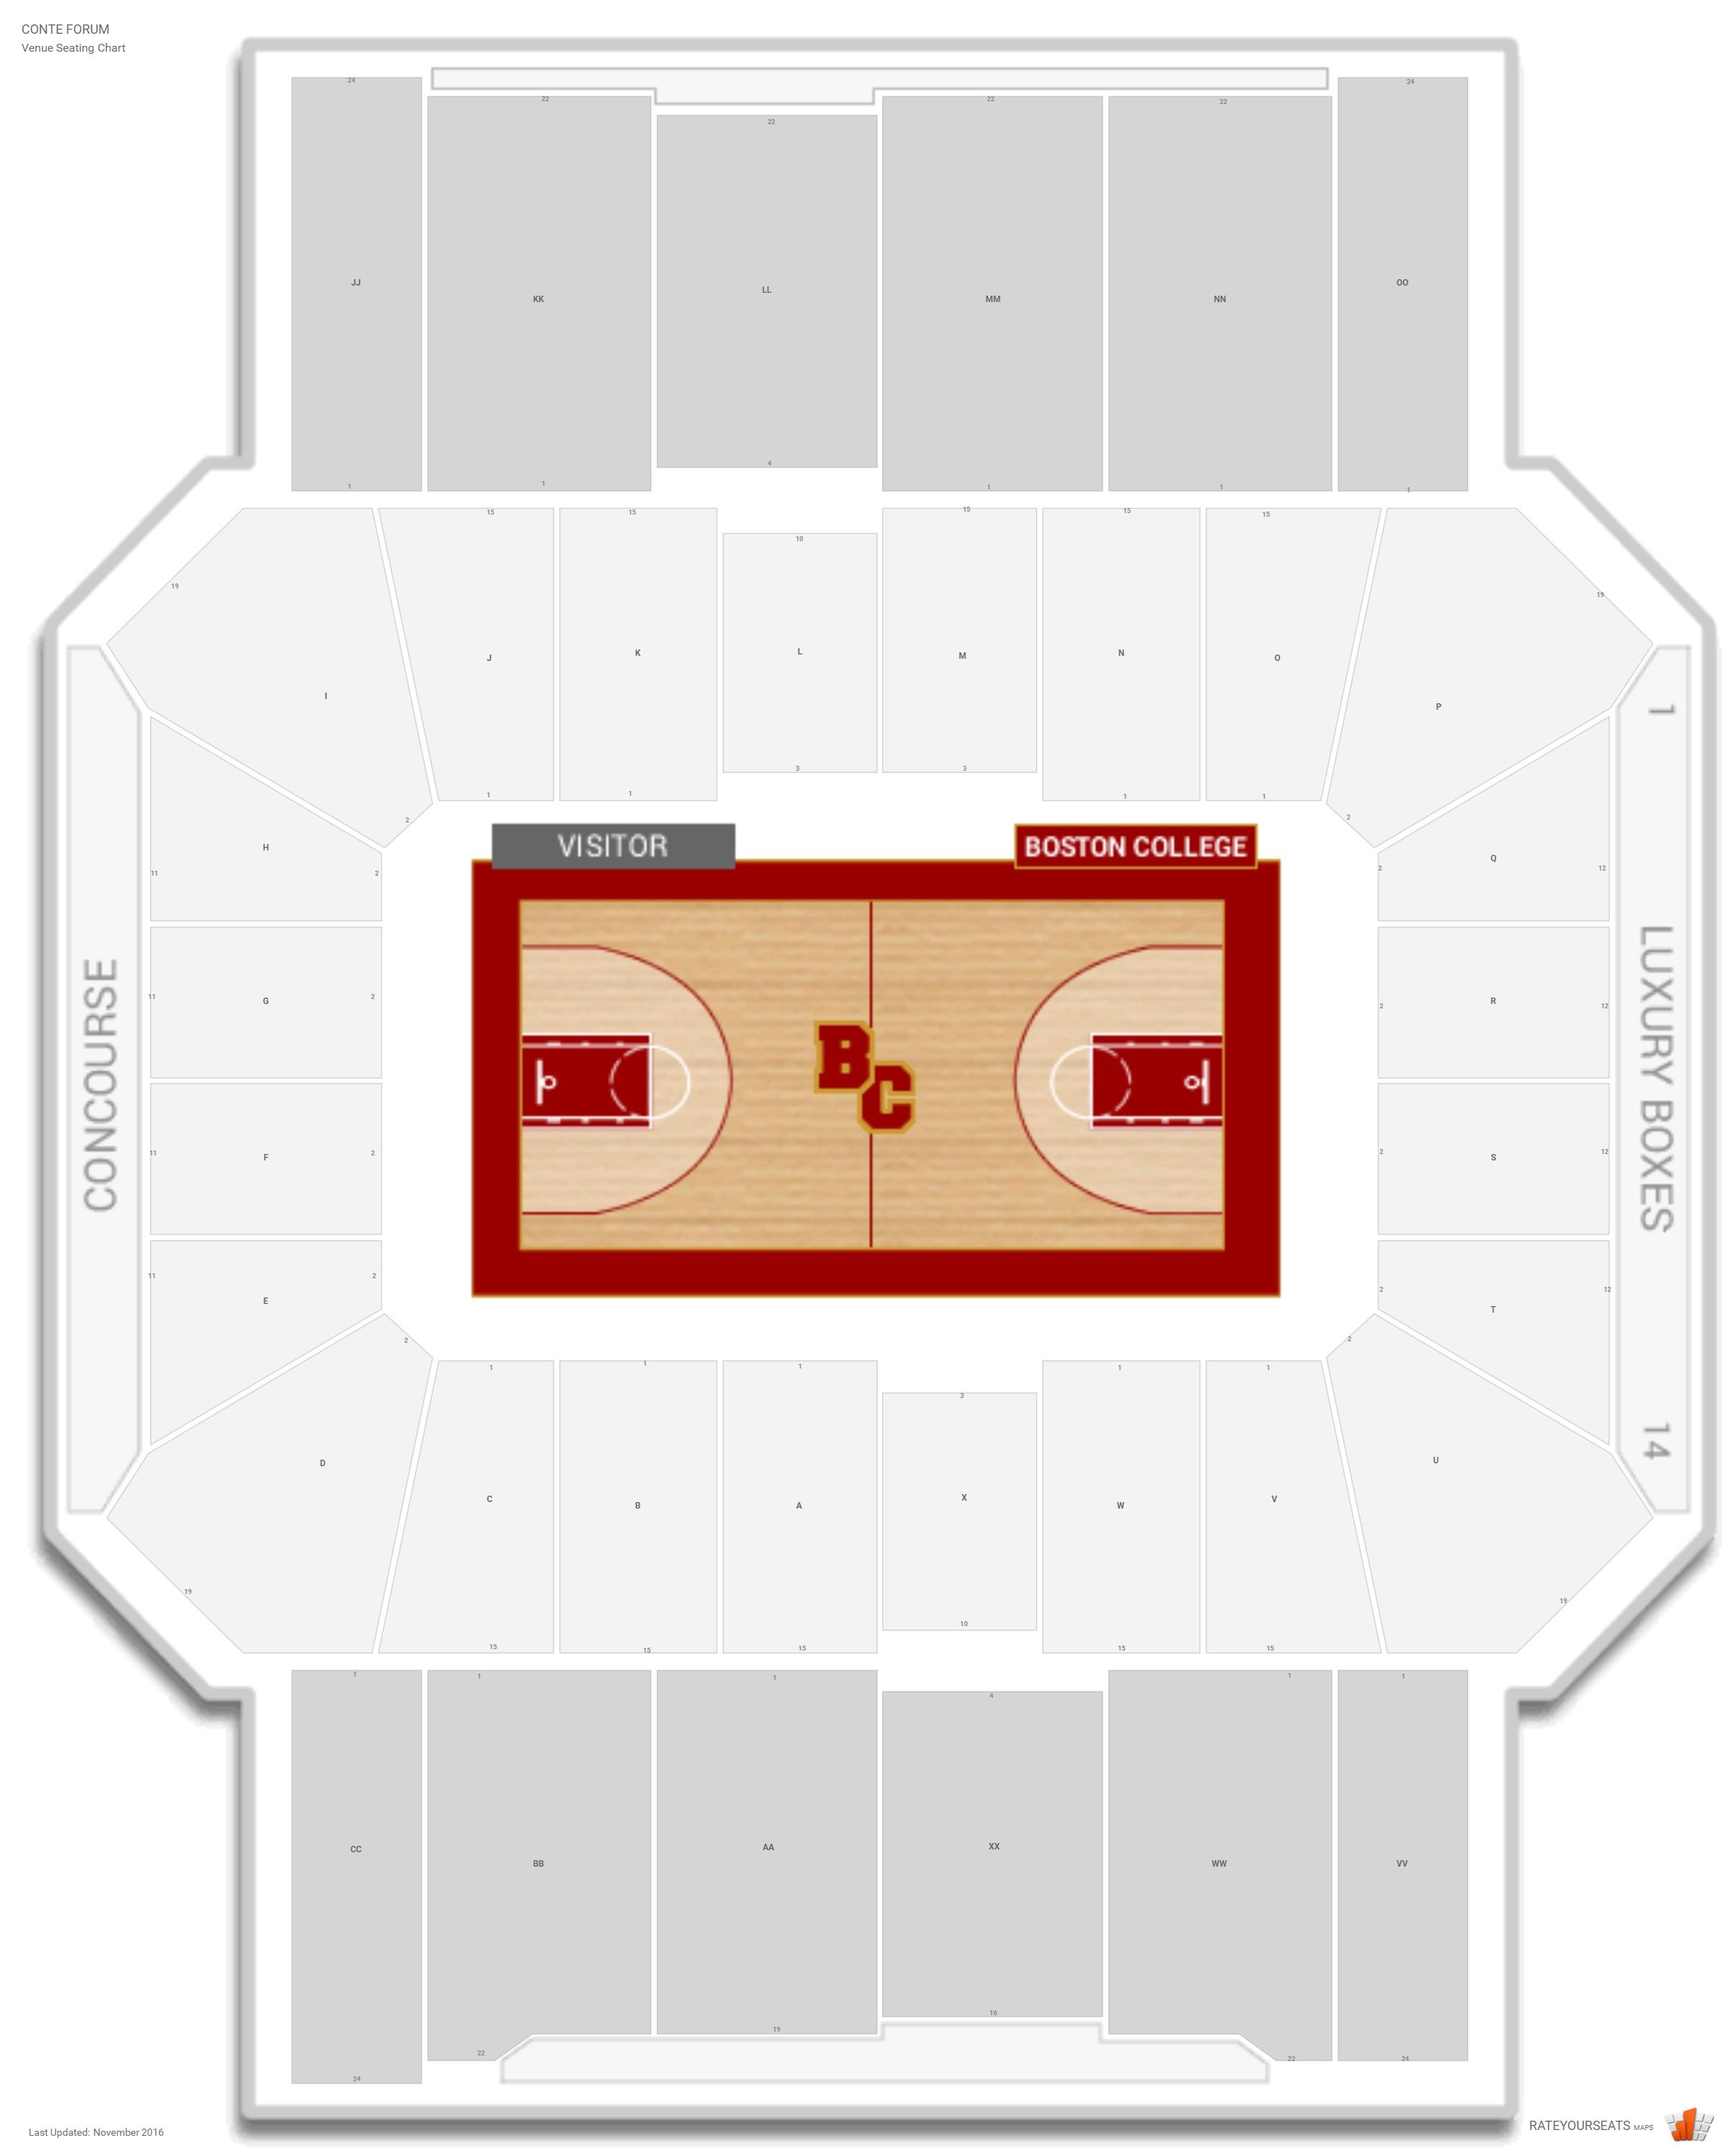 Conte Forum Seating Chart with Row Numbers